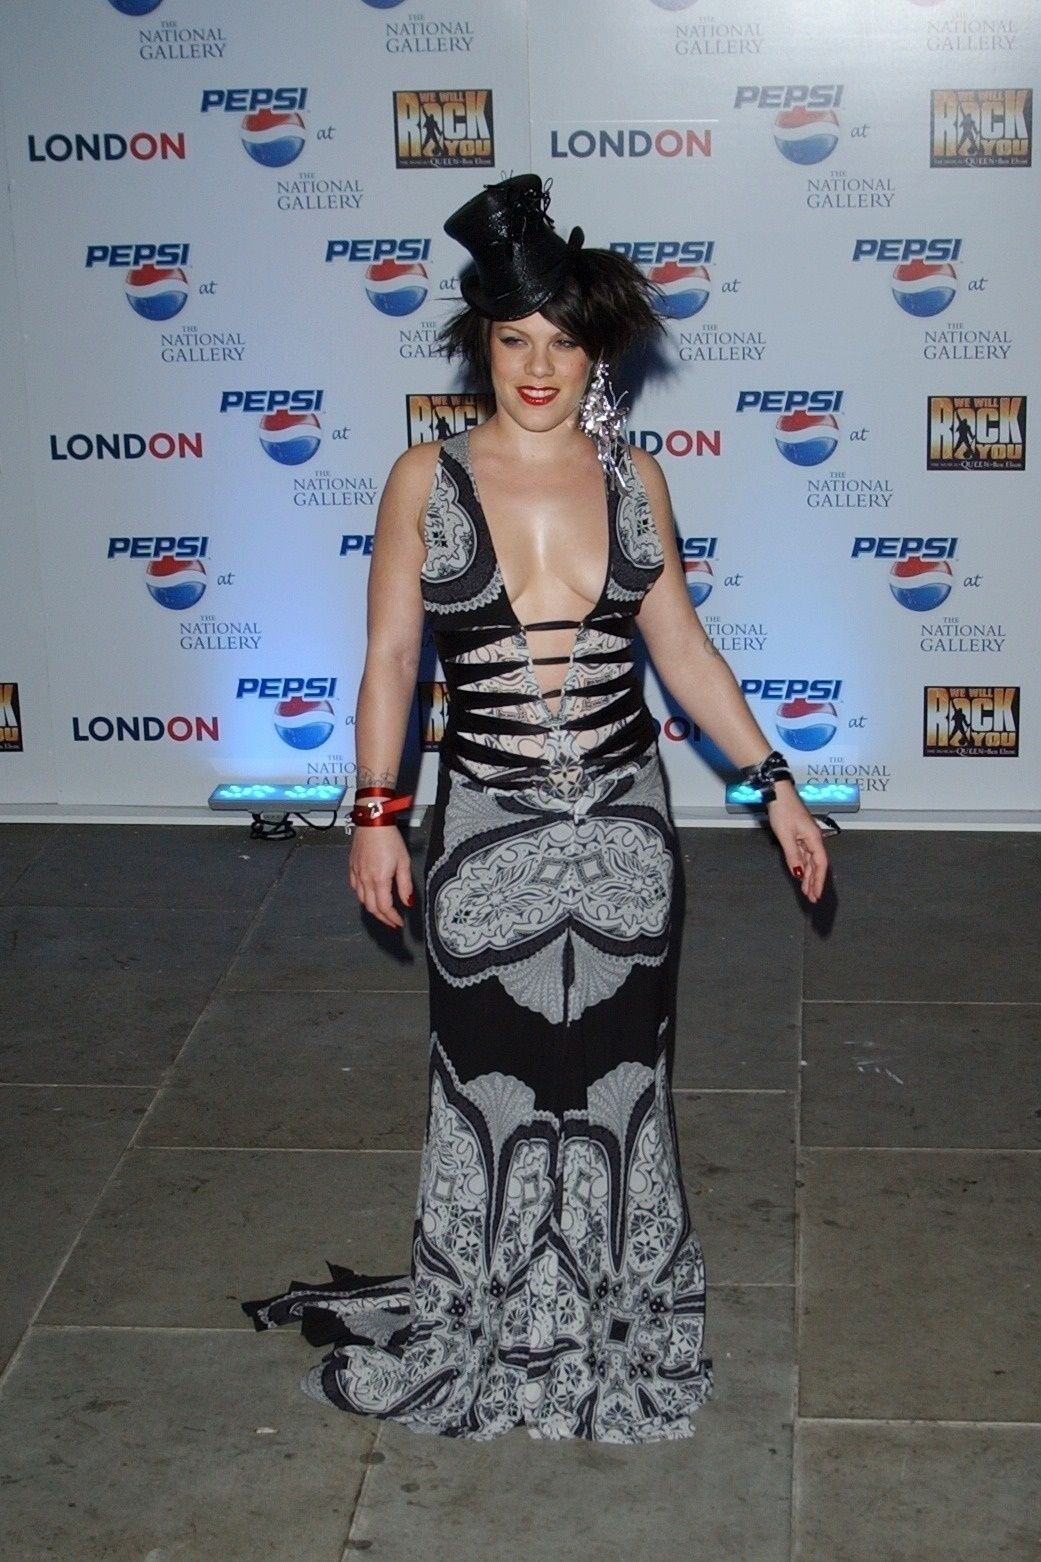 P!nk Shows Off Her Tits At Pepsi Event In Trafalgar Square In London 0010